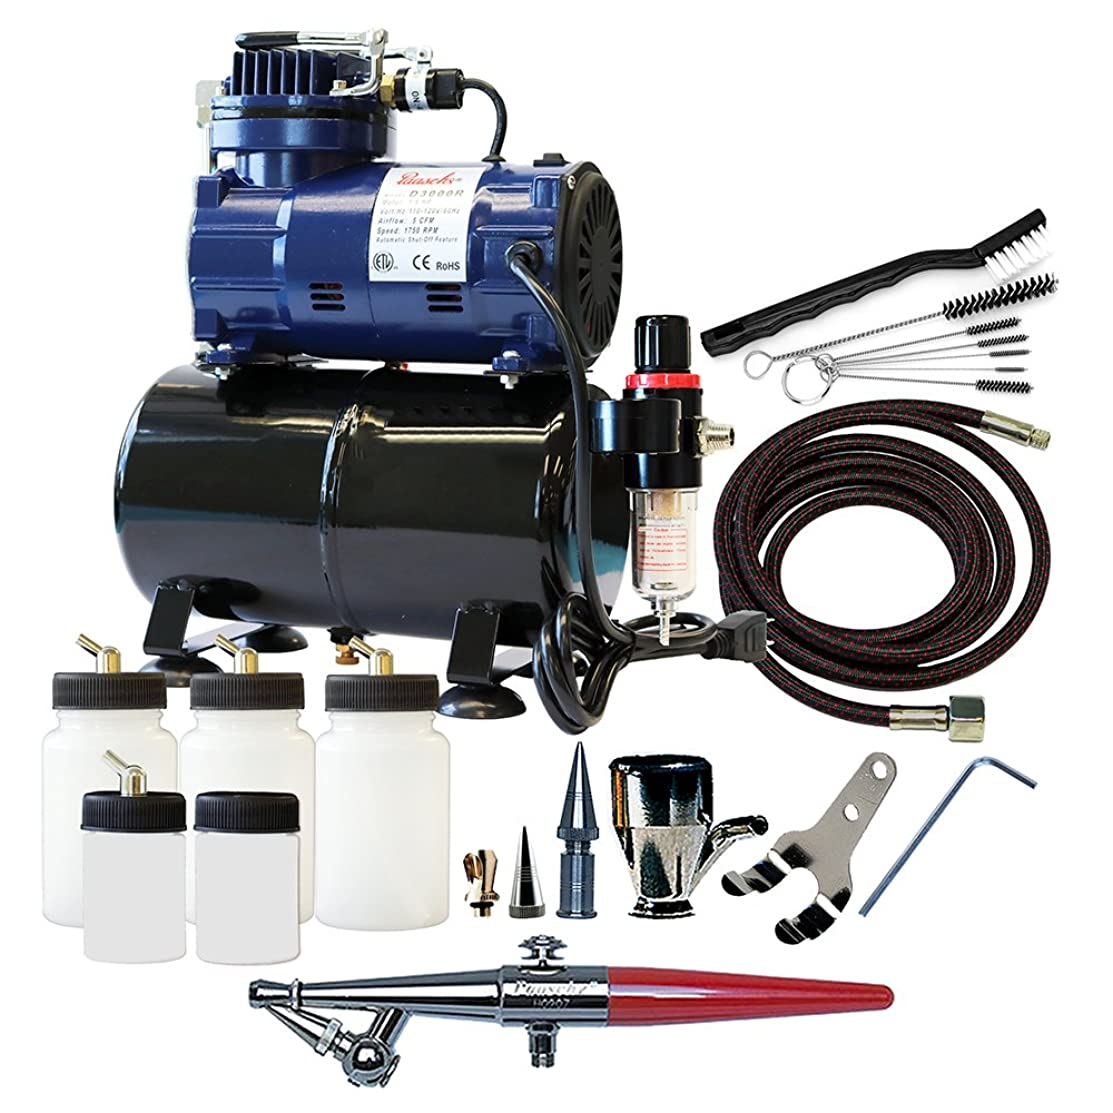 Paasche Airbrush H-300R Single Action Airbrush Set and Compressor with Tank